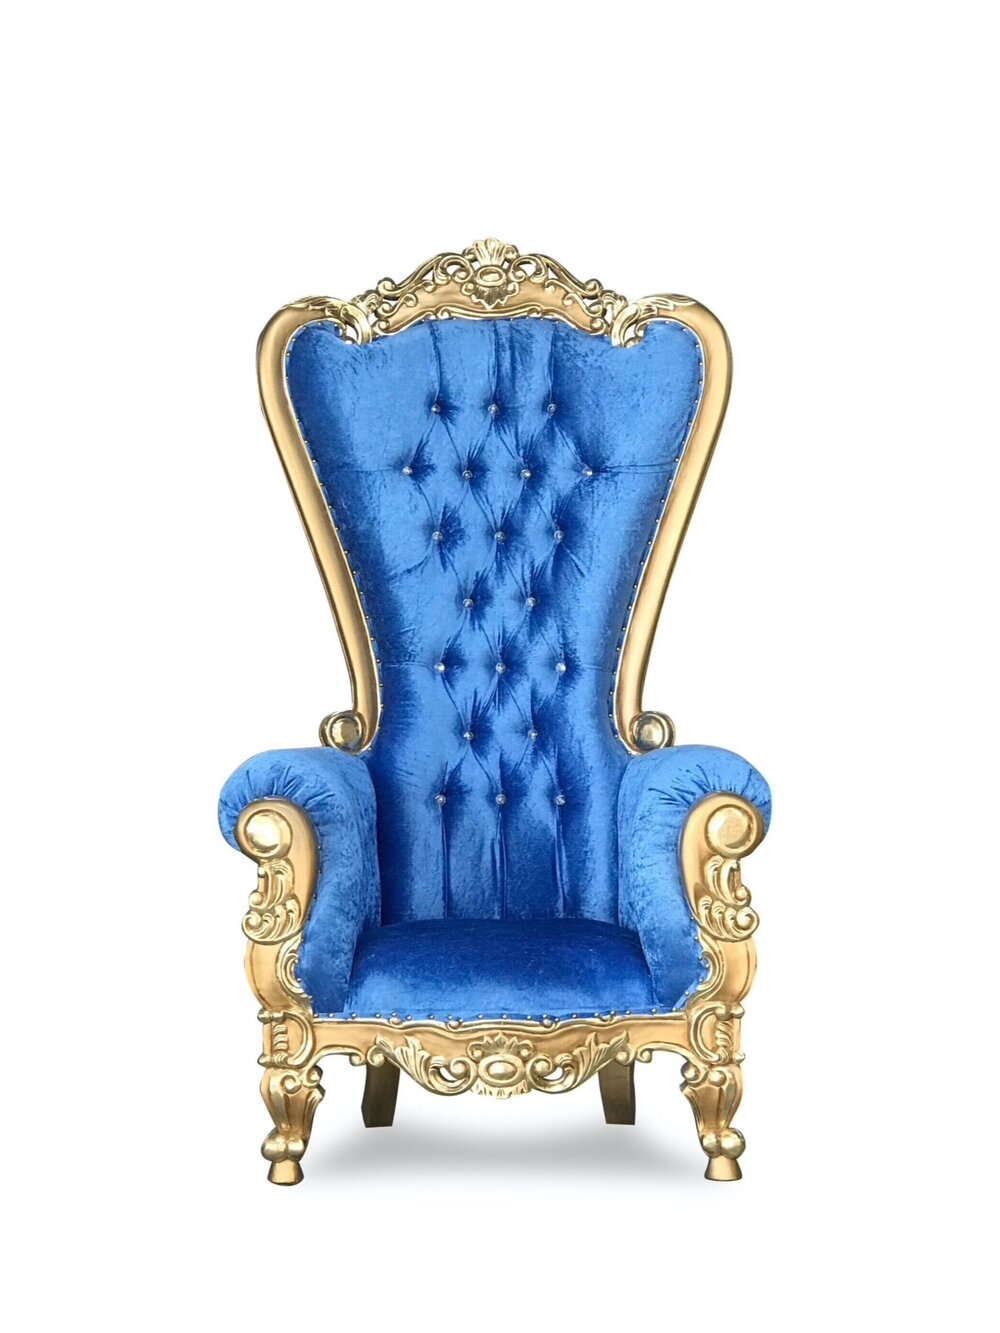 Blue and Gold Throne Chair